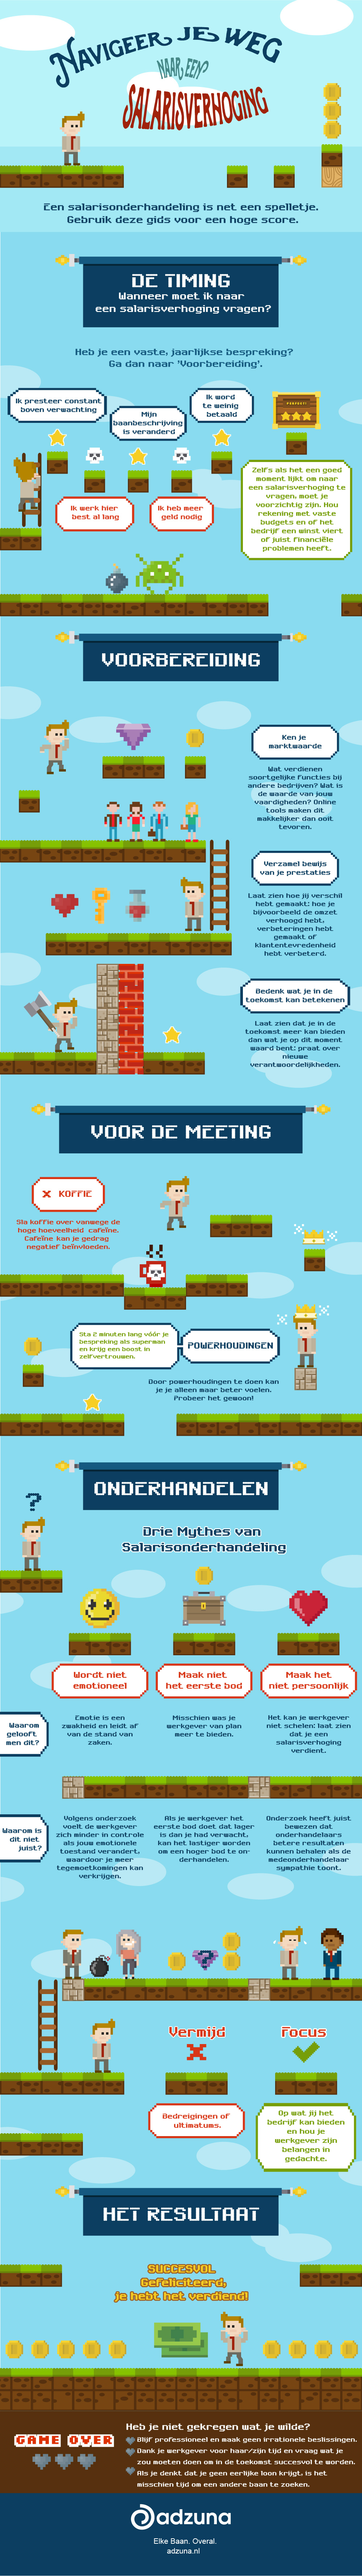 infographic tips salarisverhoging